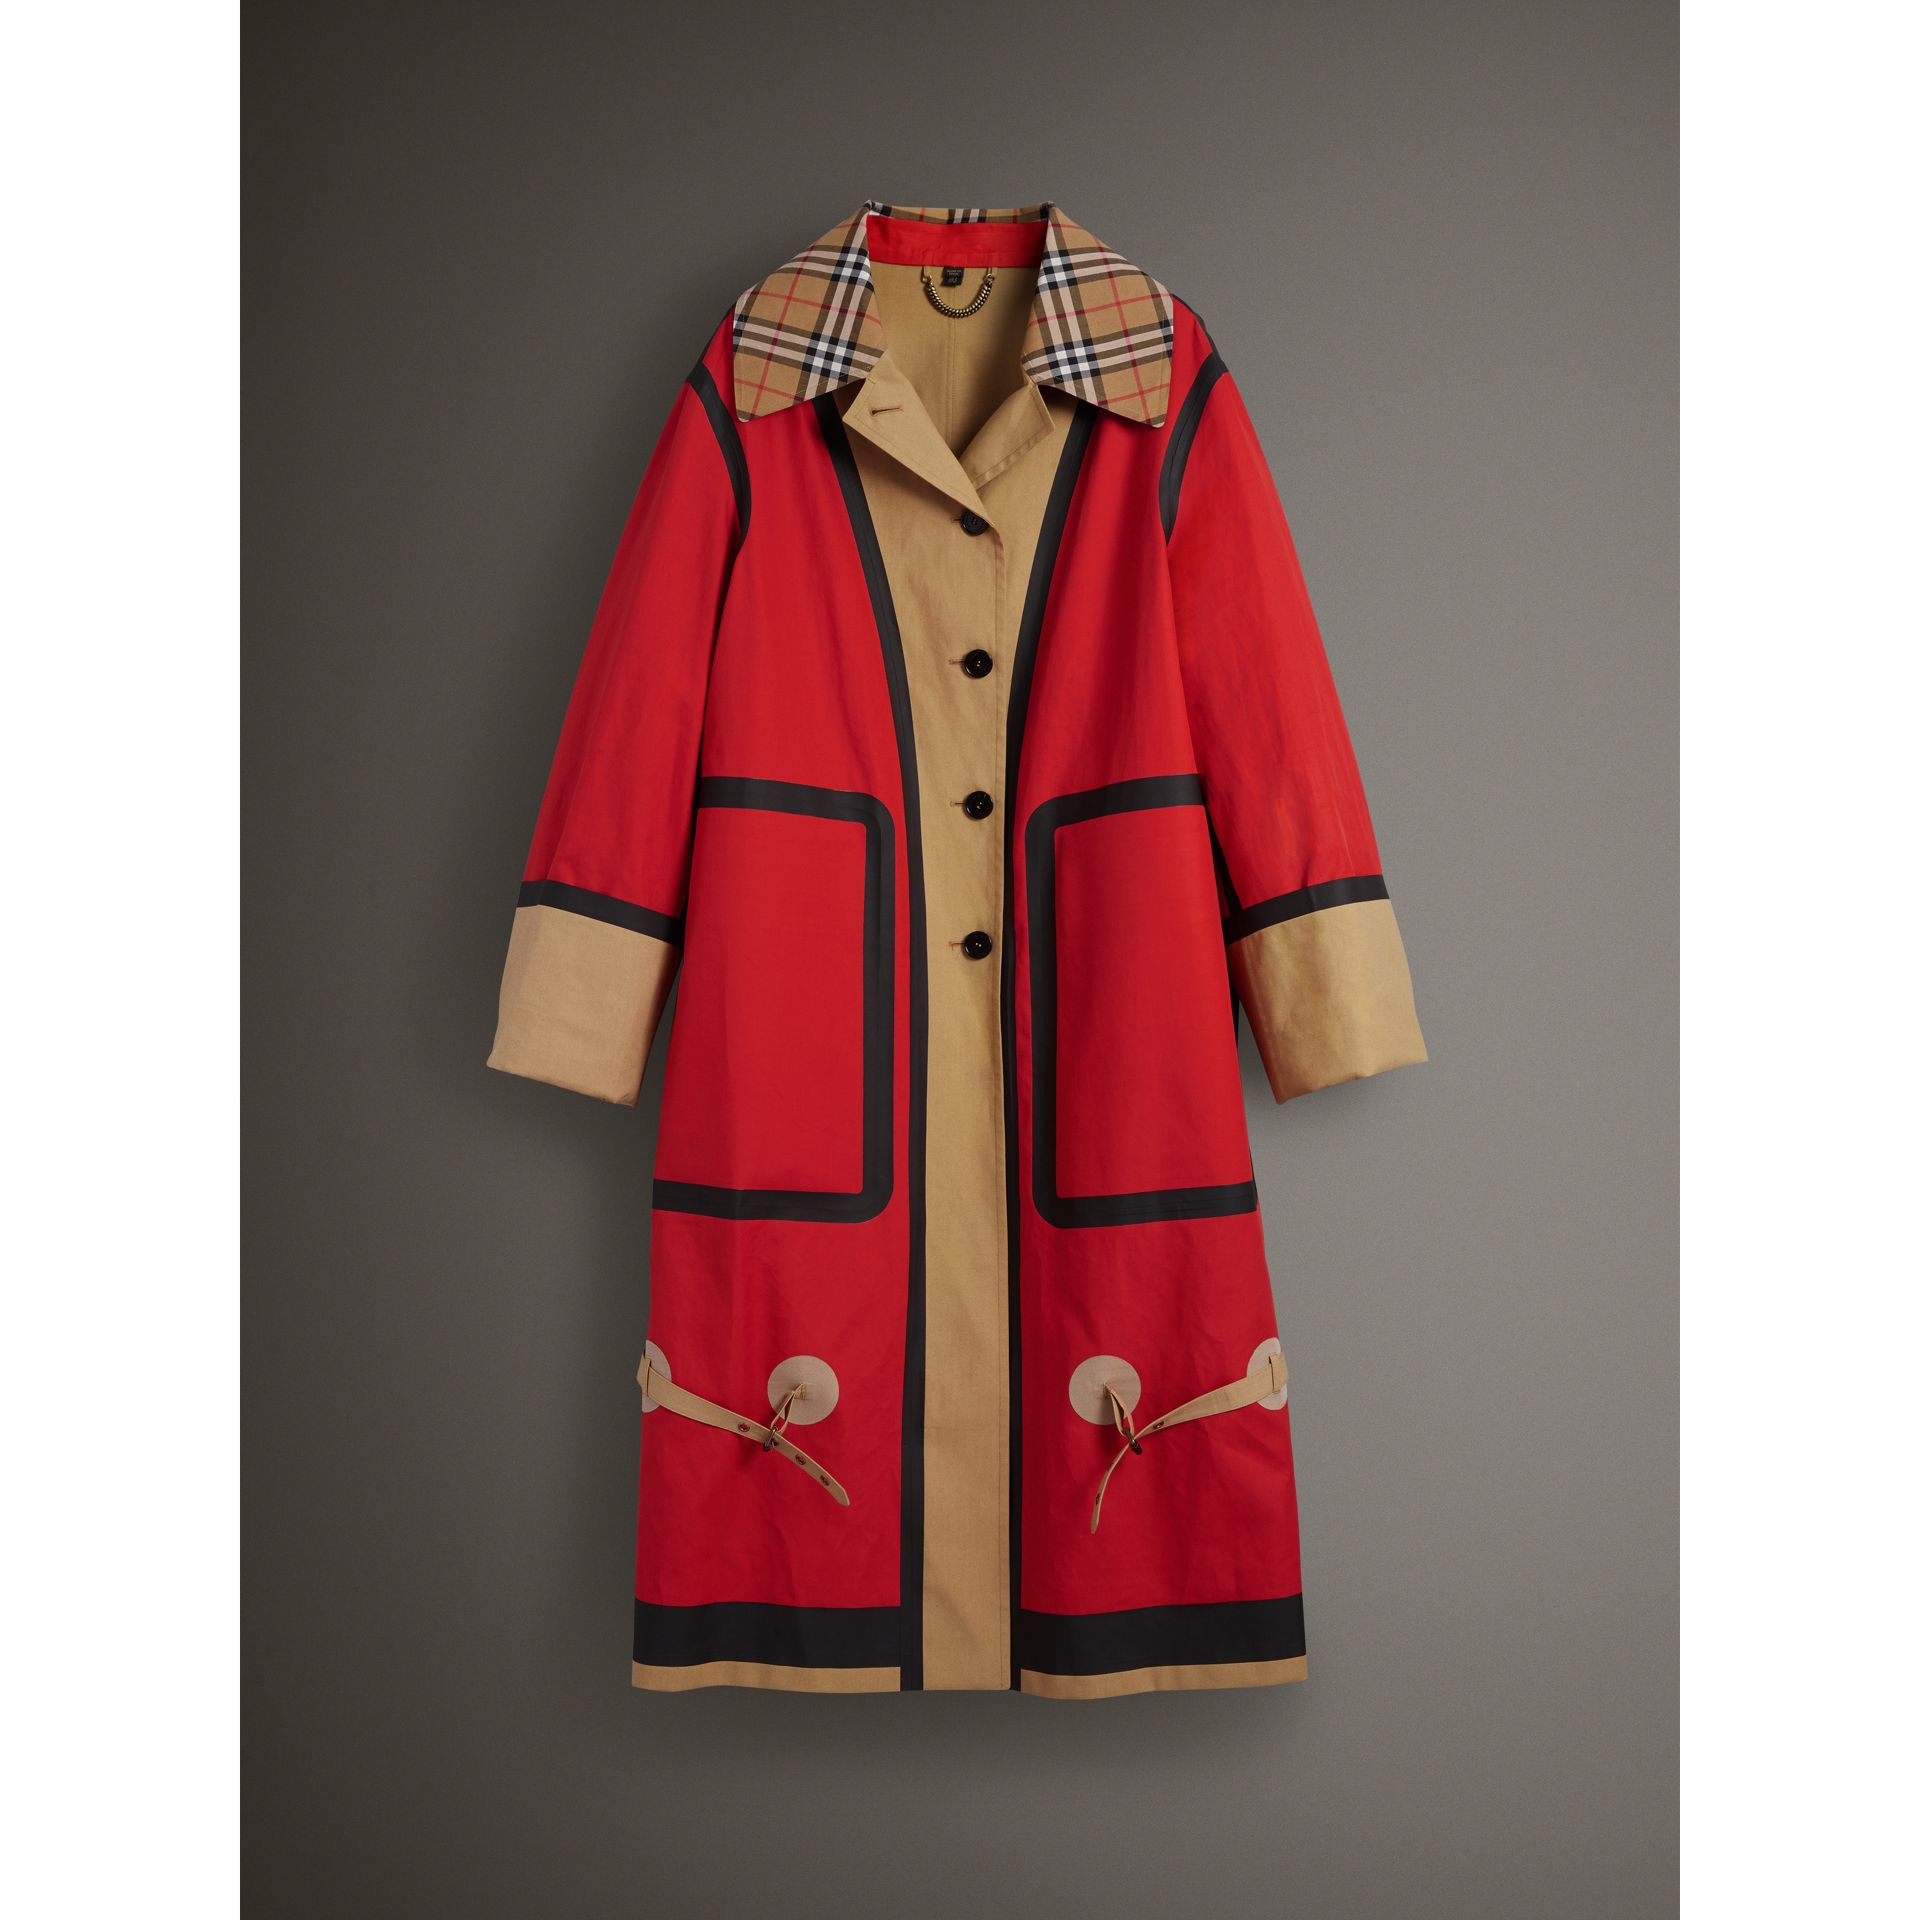 Bonded Cotton Oversized Seam-sealed Car Coat in Red/beige - Women | Burberry United Kingdom - gallery image 3